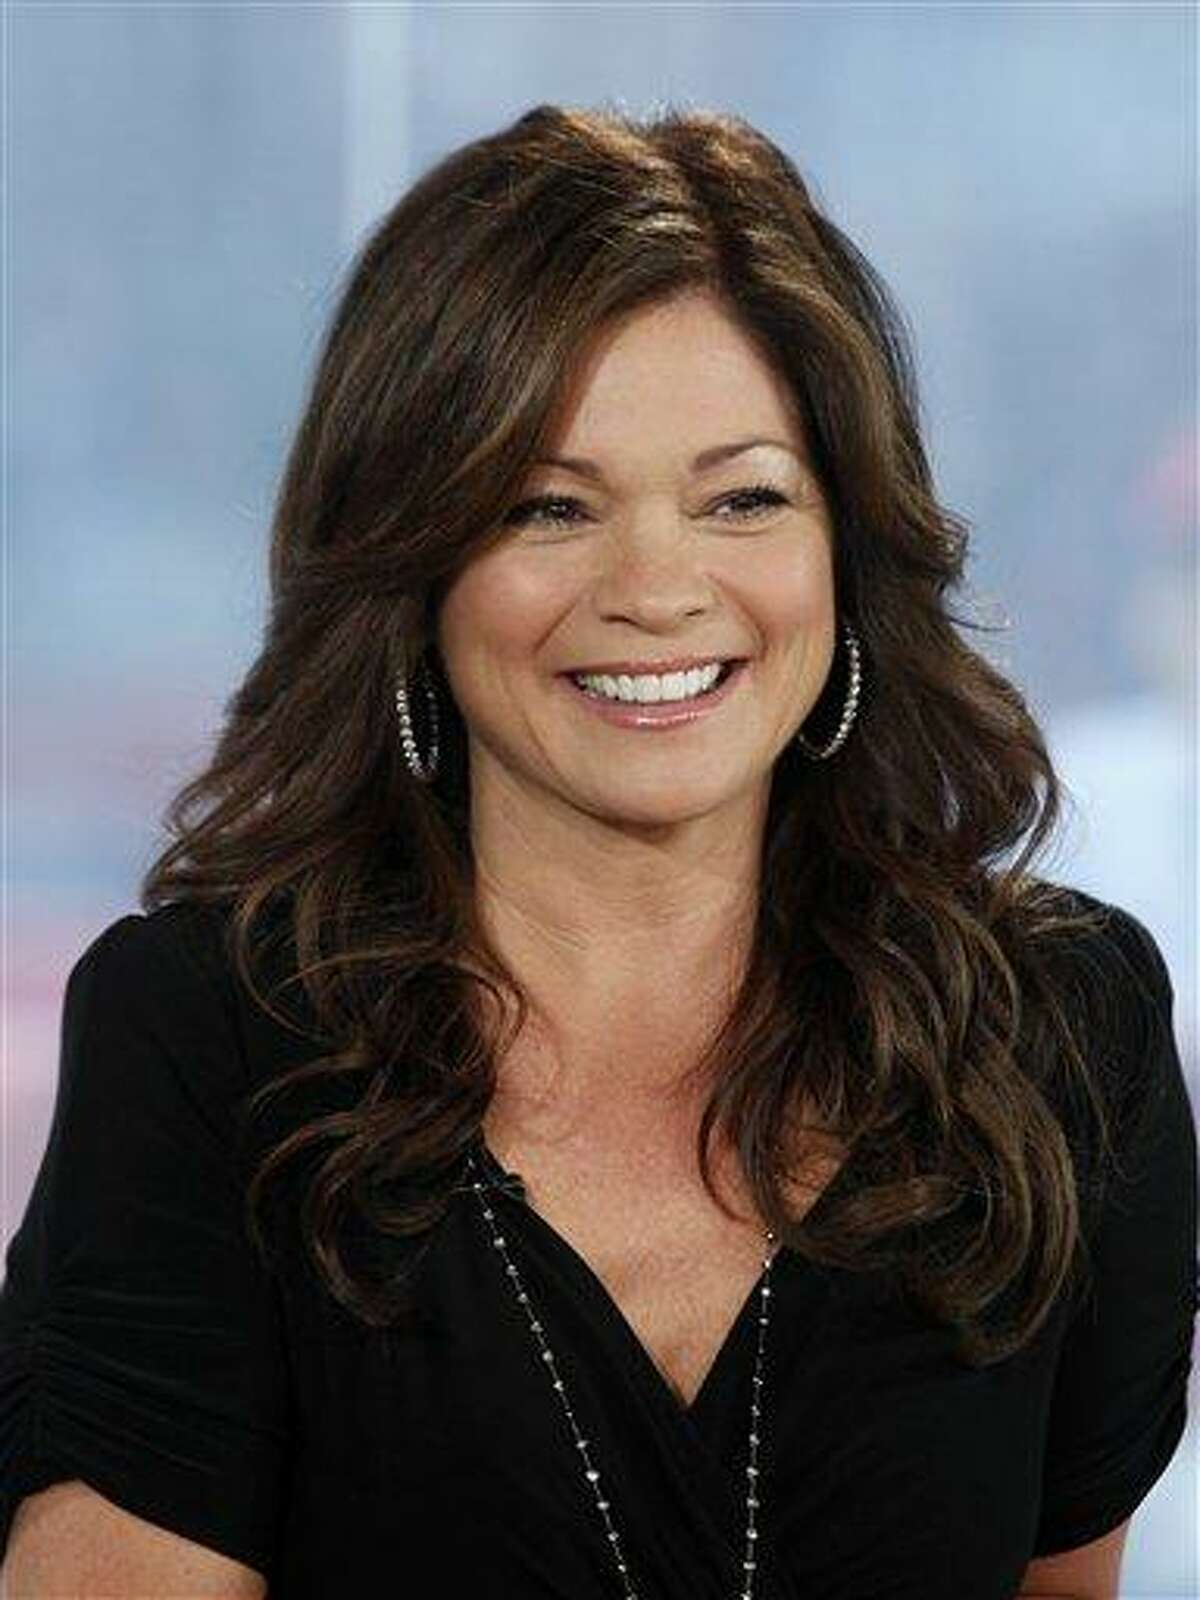 FILE - This file photo provided by NBC Universal, shows actress Valerie Bertinelli appearing on NBC's